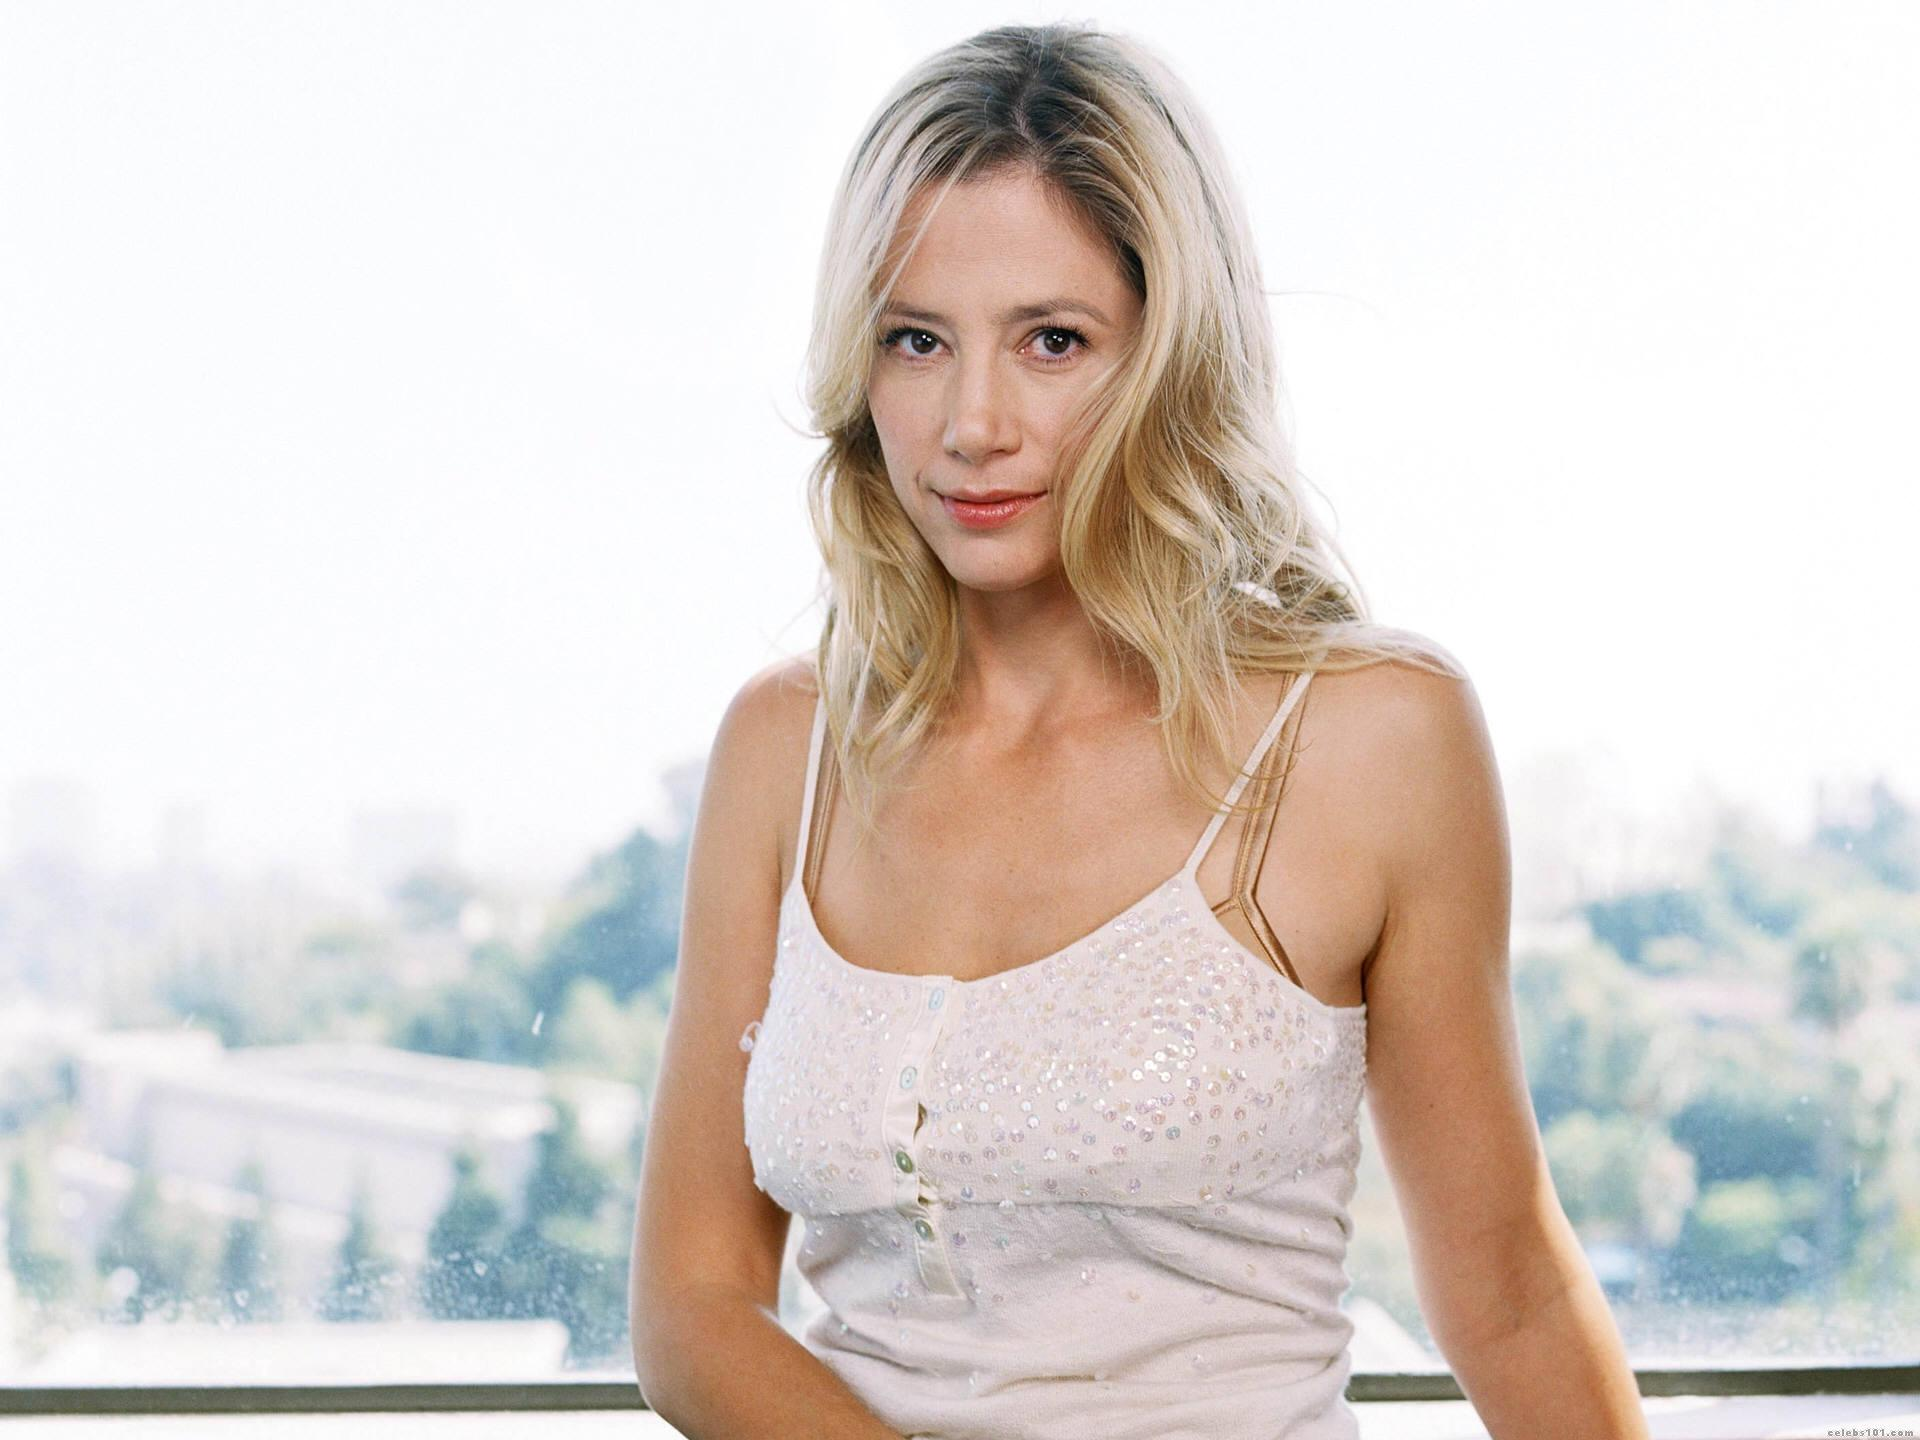 Actress Mira Sorvino - age: 53